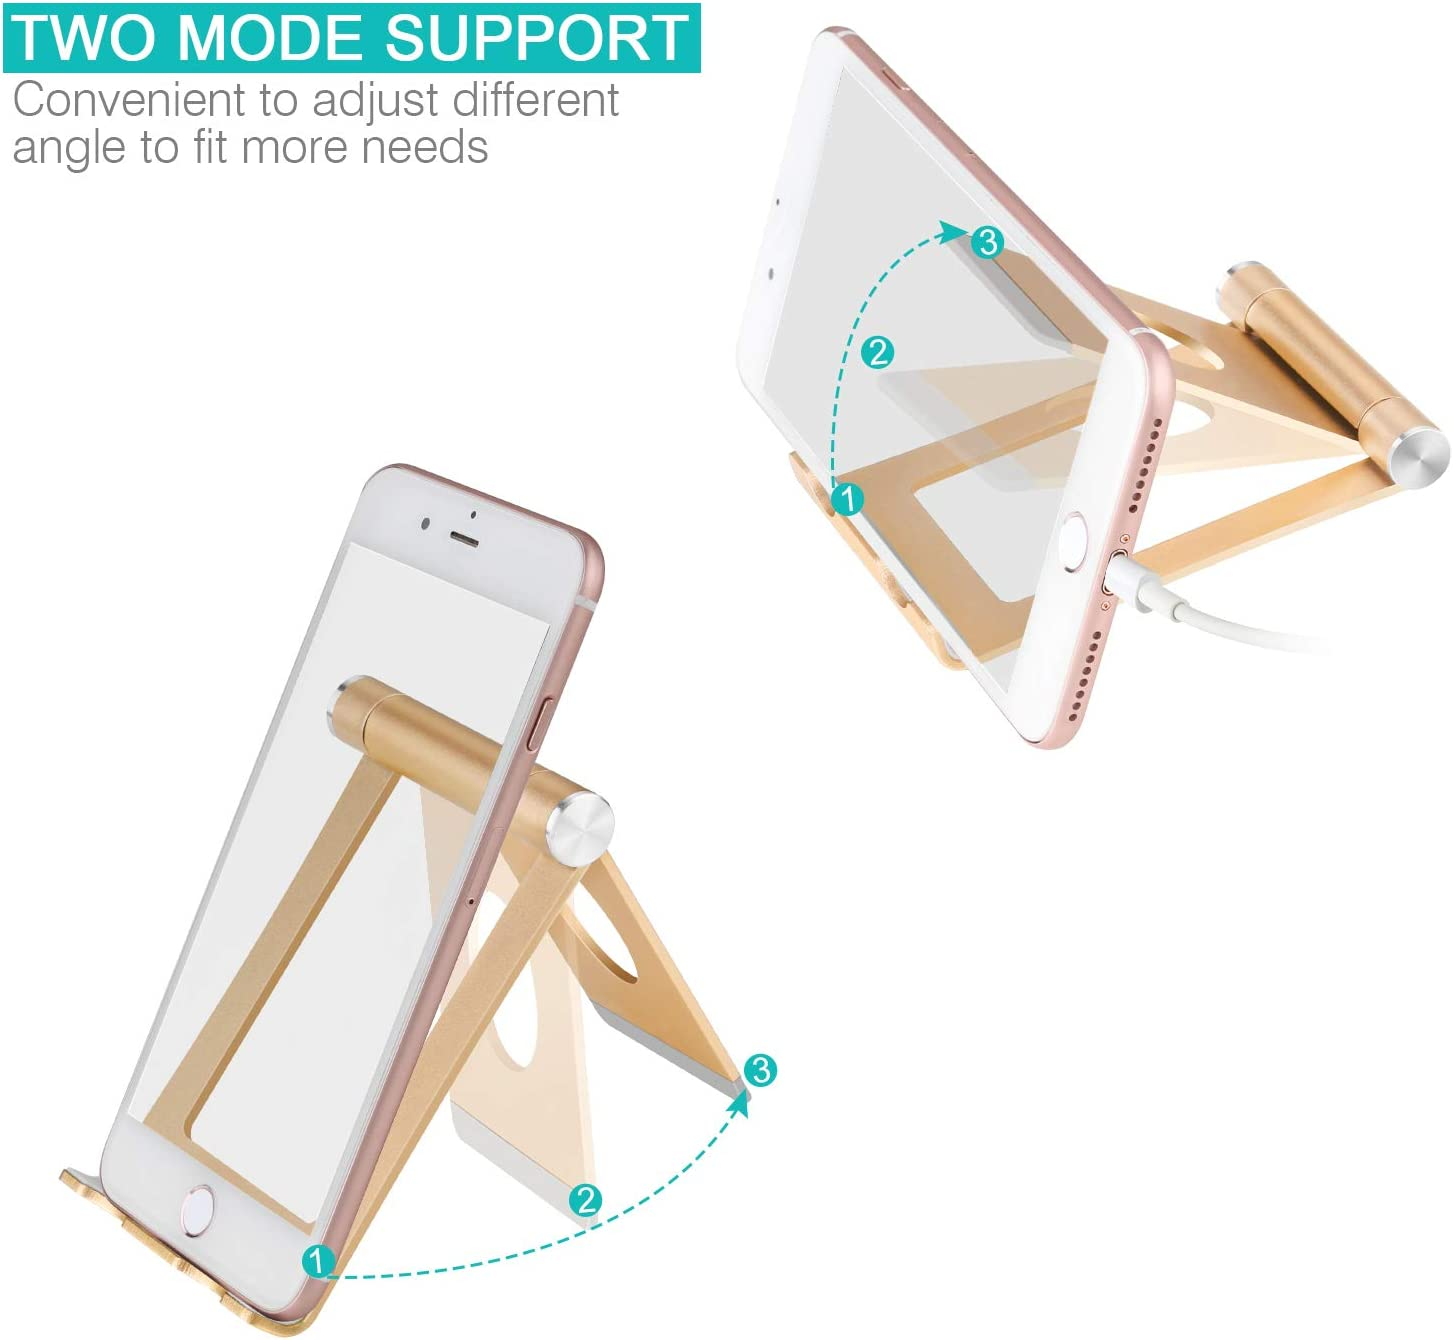 - Gold Universal Aluminium Stand for Cellphones and Tablets 4-11 Portable Phone Stand: Full 360/° Adjustable Cell Phone Holder Cradle Dock for Phone Xs XR X 8 7 6 6S Plus Cell Phone Stand